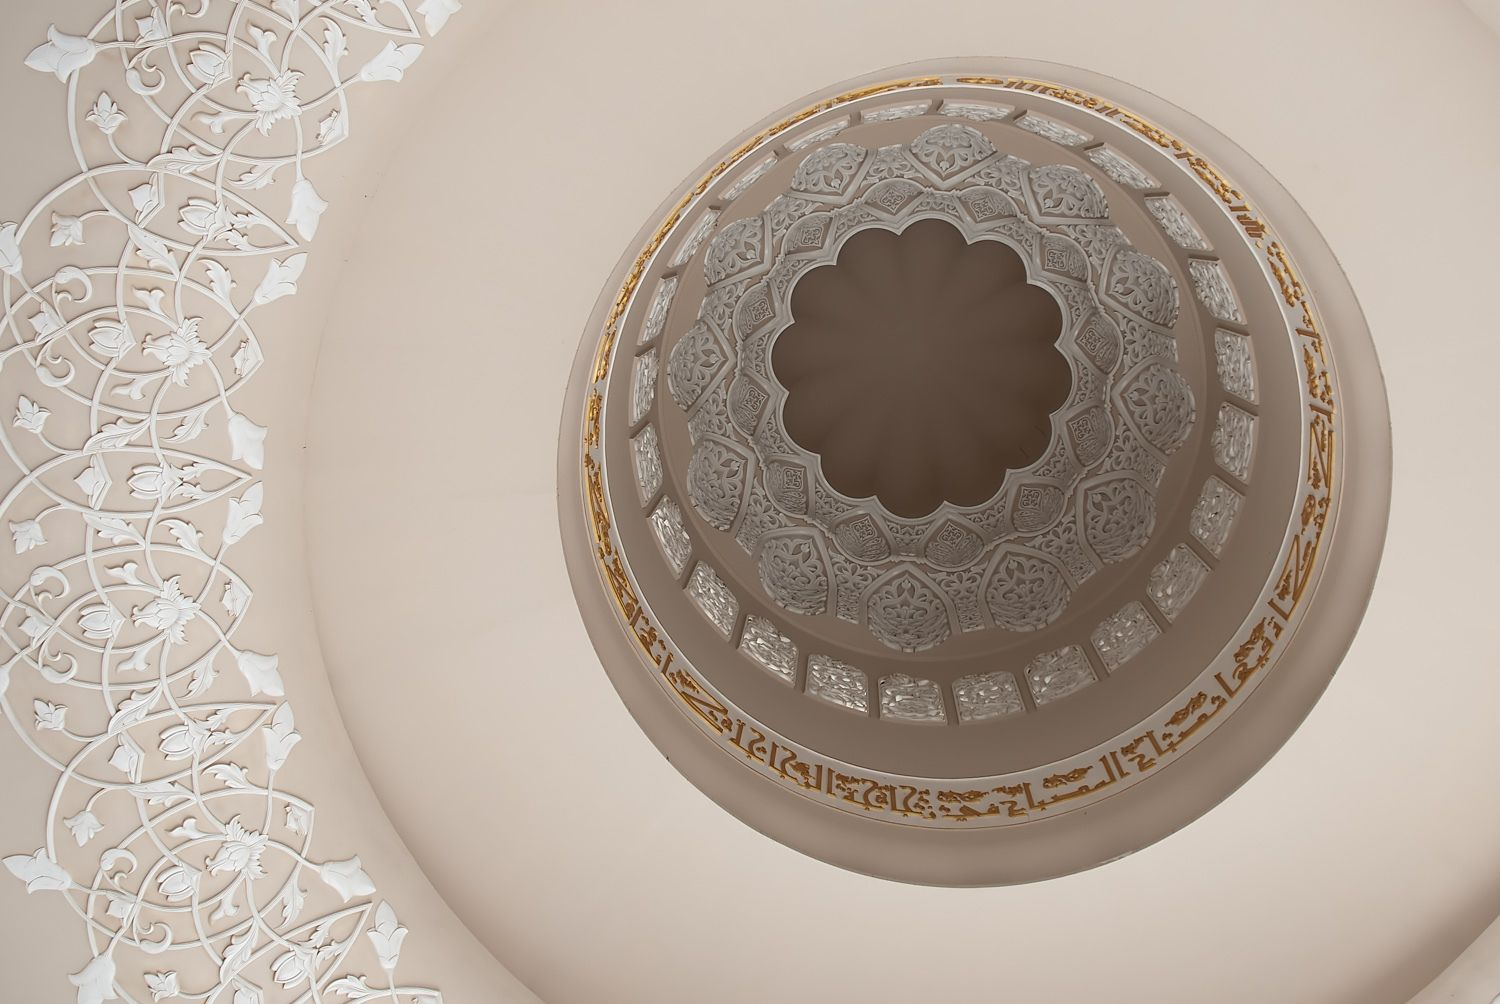 Detail of Dome in Sheikh Zayed Mosque, Abu Dhabi